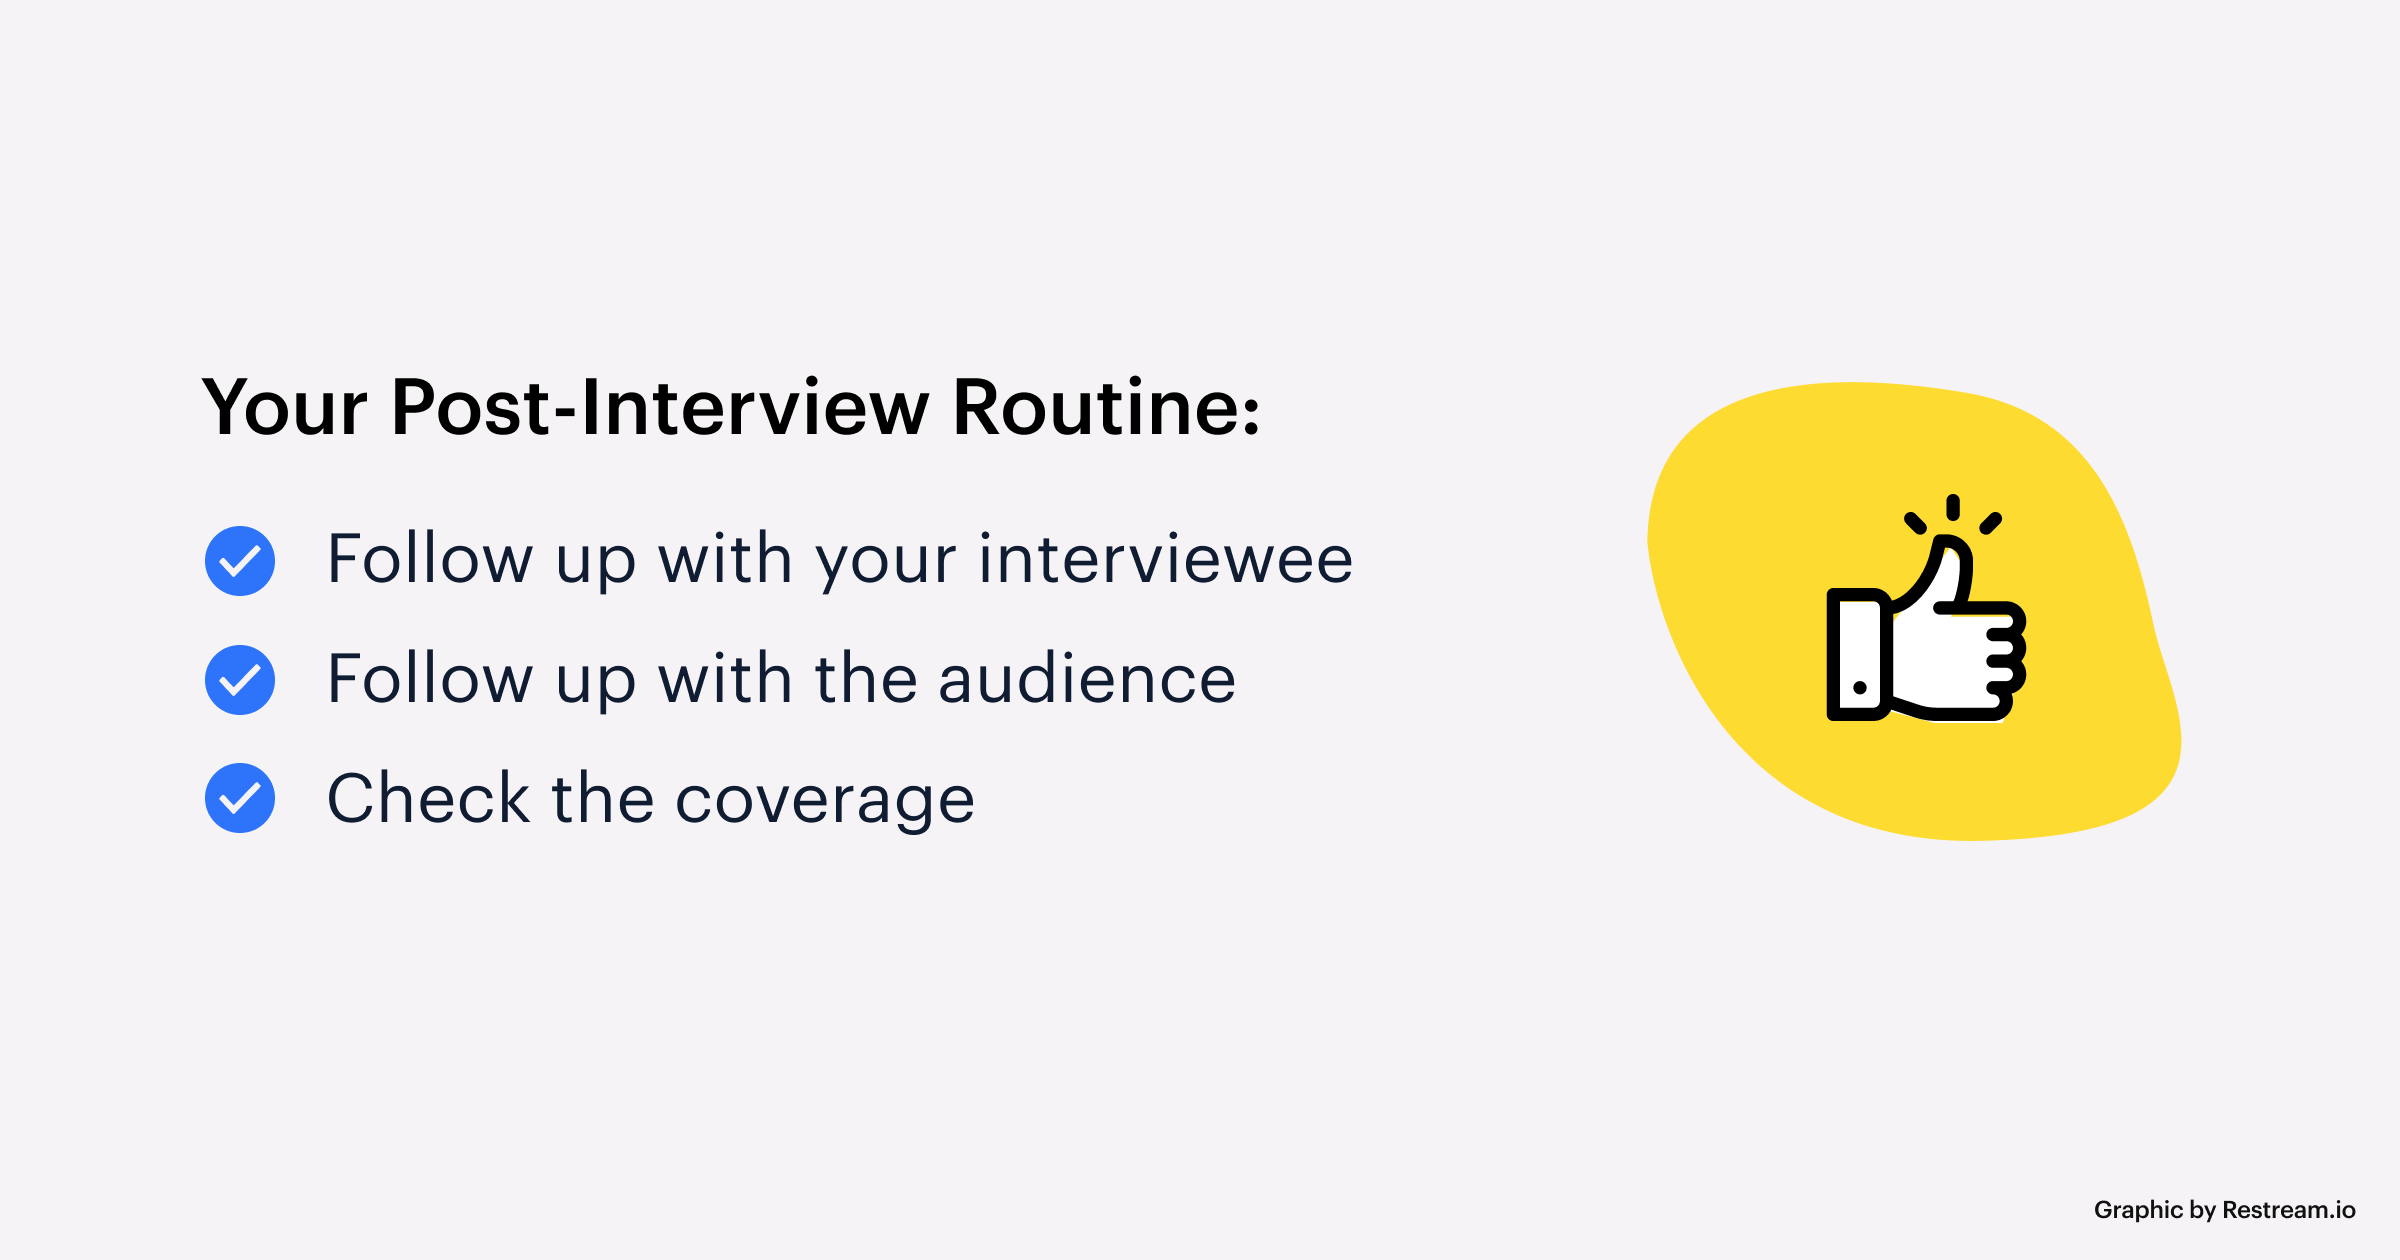 Your Post-Interview Routine checklist